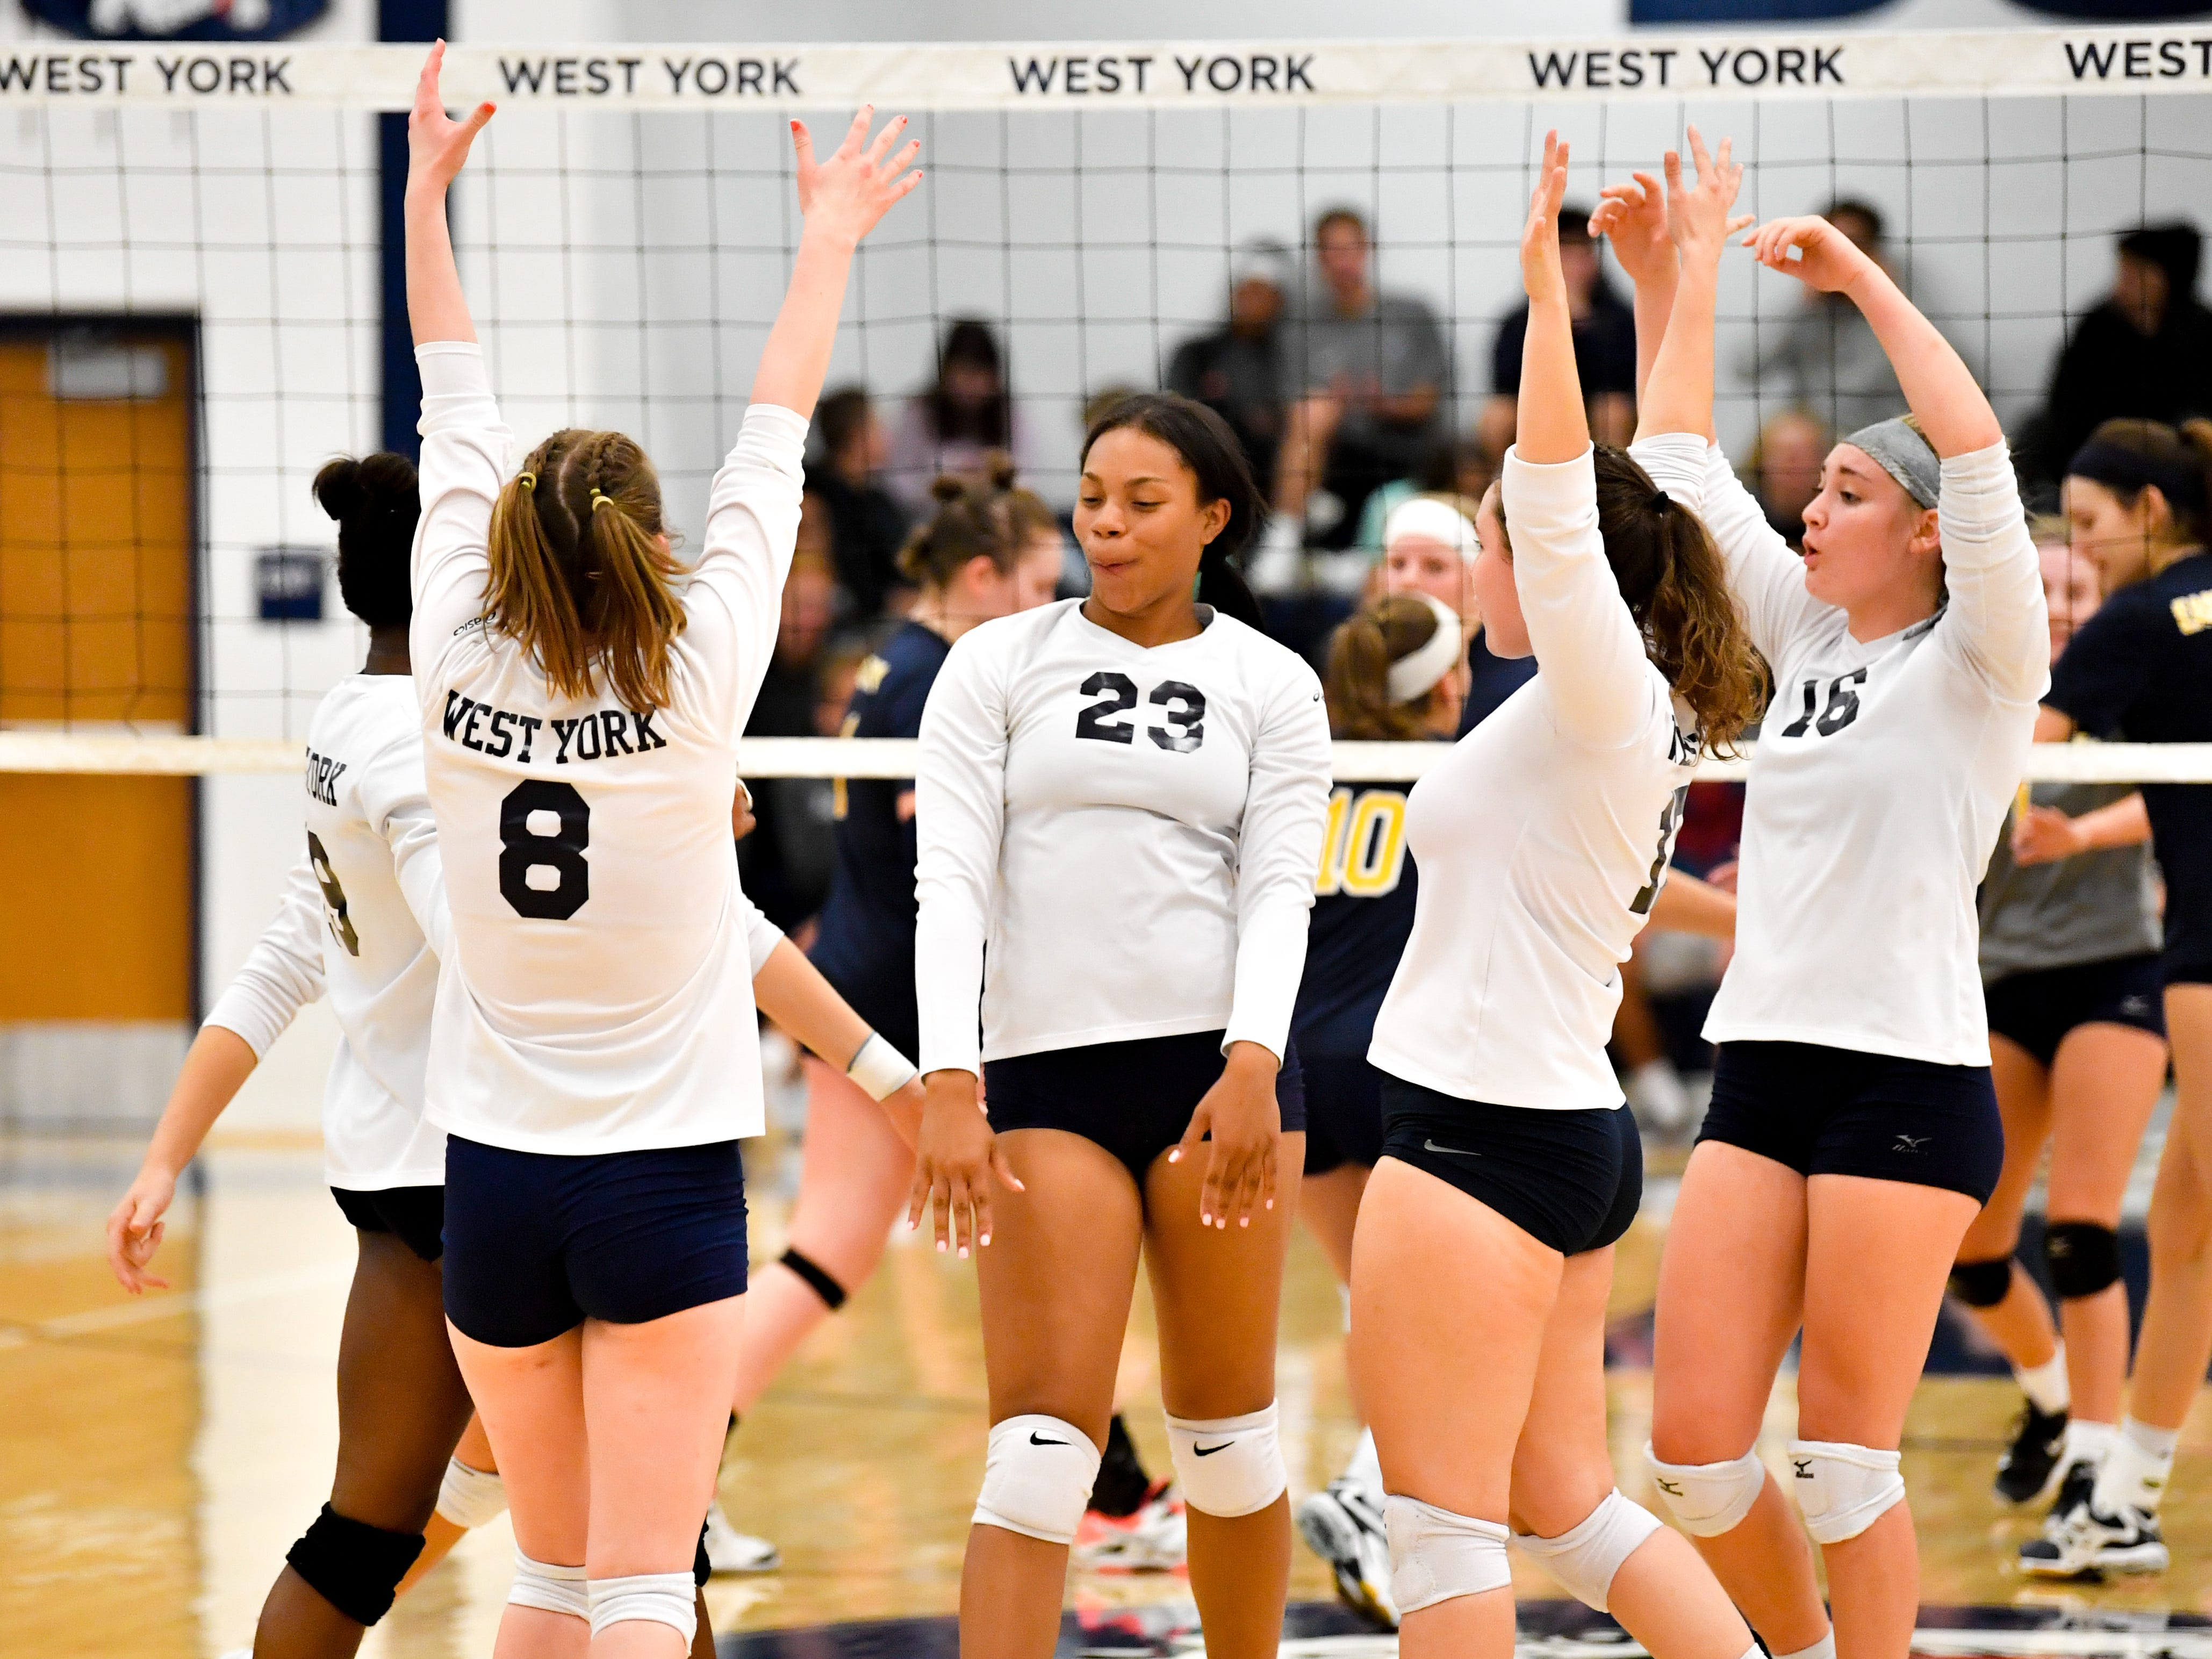 West York celebrates their block during the District 3 Class 3A girls' volleyball quarterfinals between West York and Eastern York at West York High School, October 30, 2018. The Bulldogs defeated the Golden Knights 3-0.